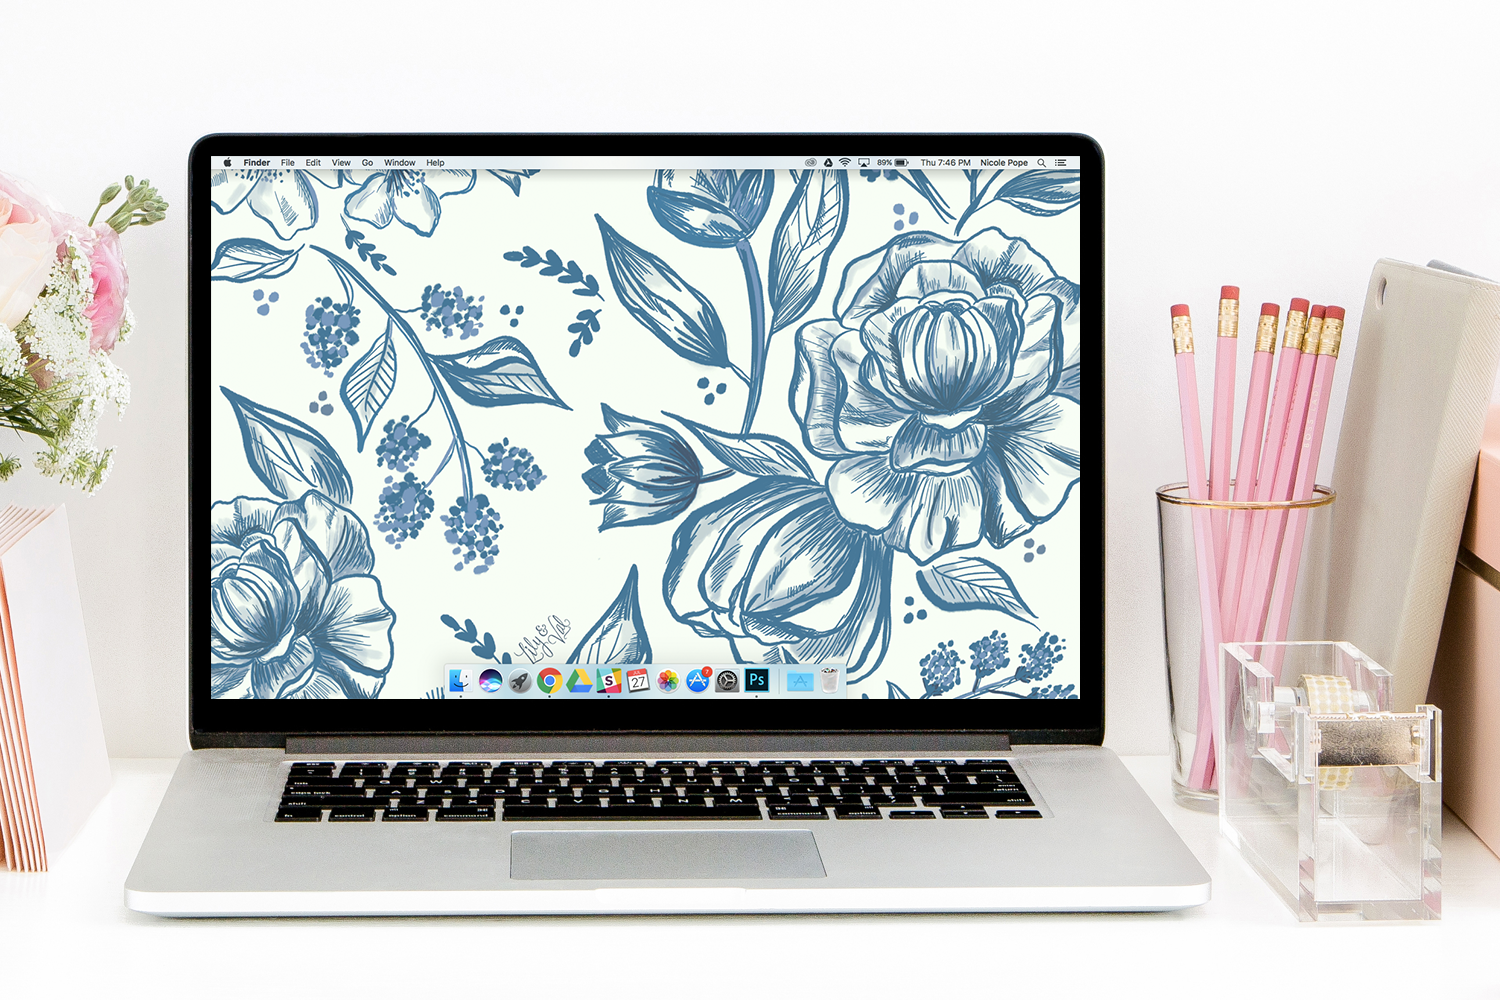 August's Blue Floral Free Desktop Wallpaper Download - beautiful hand-illustrated blue floral design